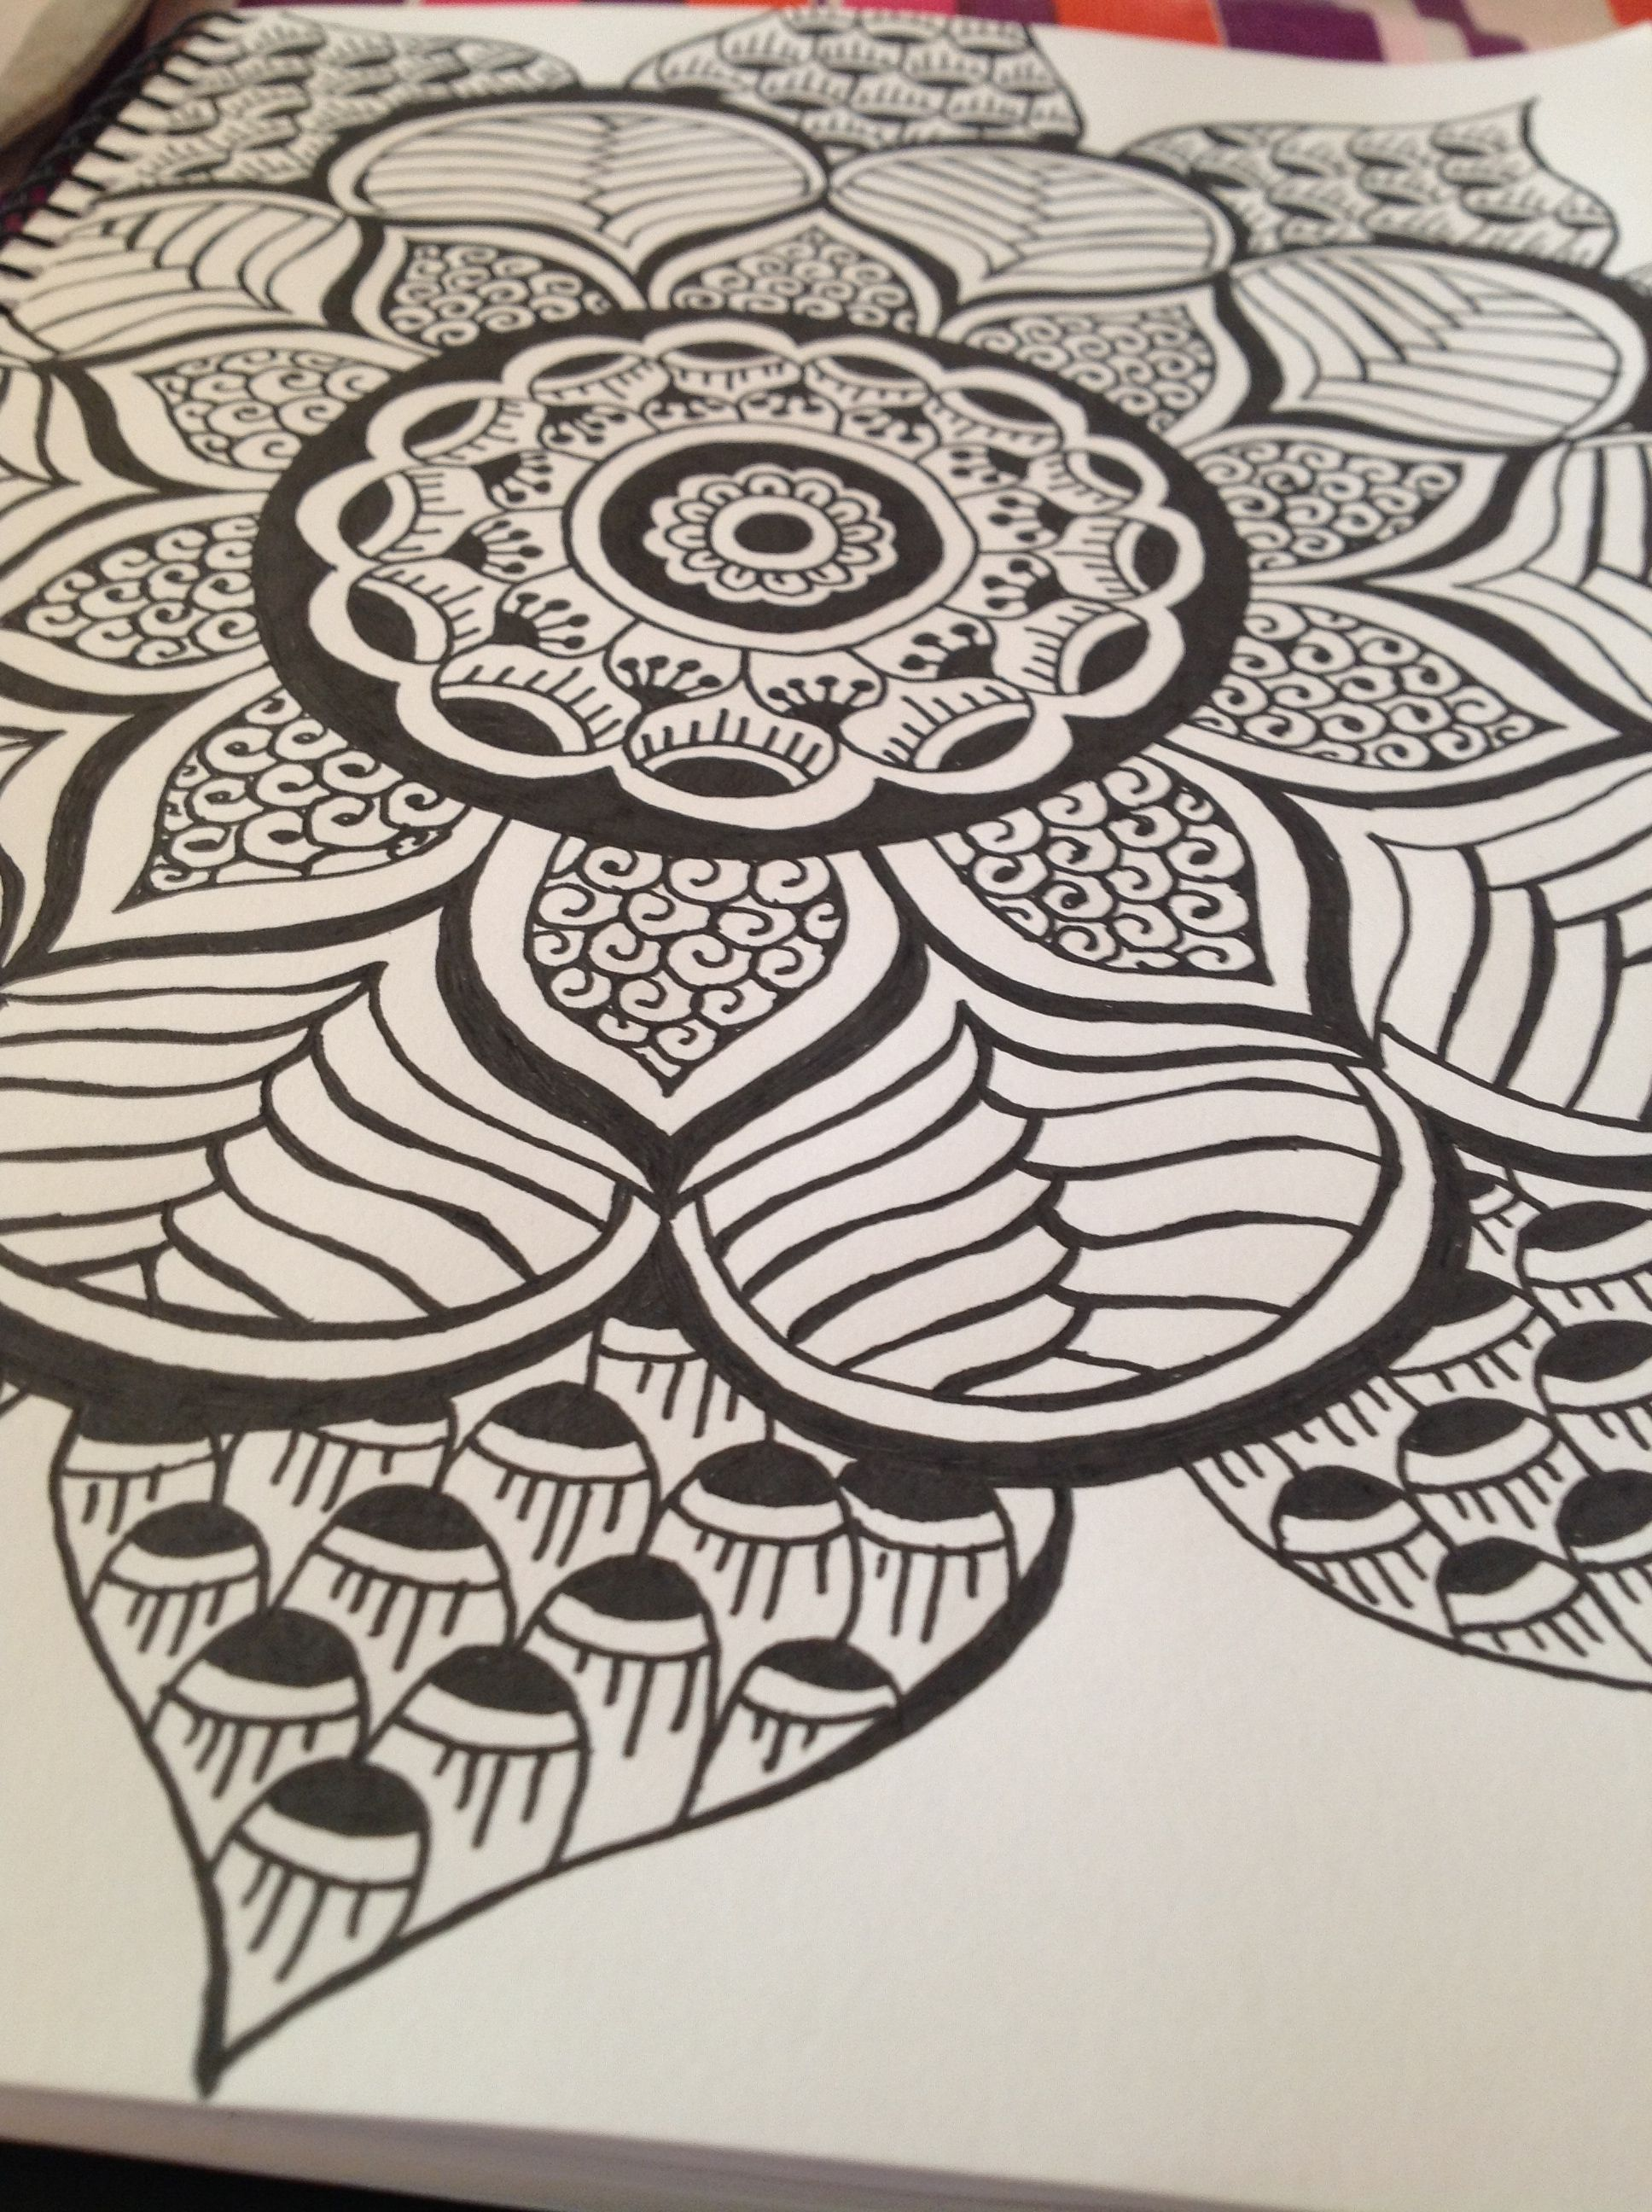 Zentangle Mandala | Zentangle drawings, Doodle art, Mandala